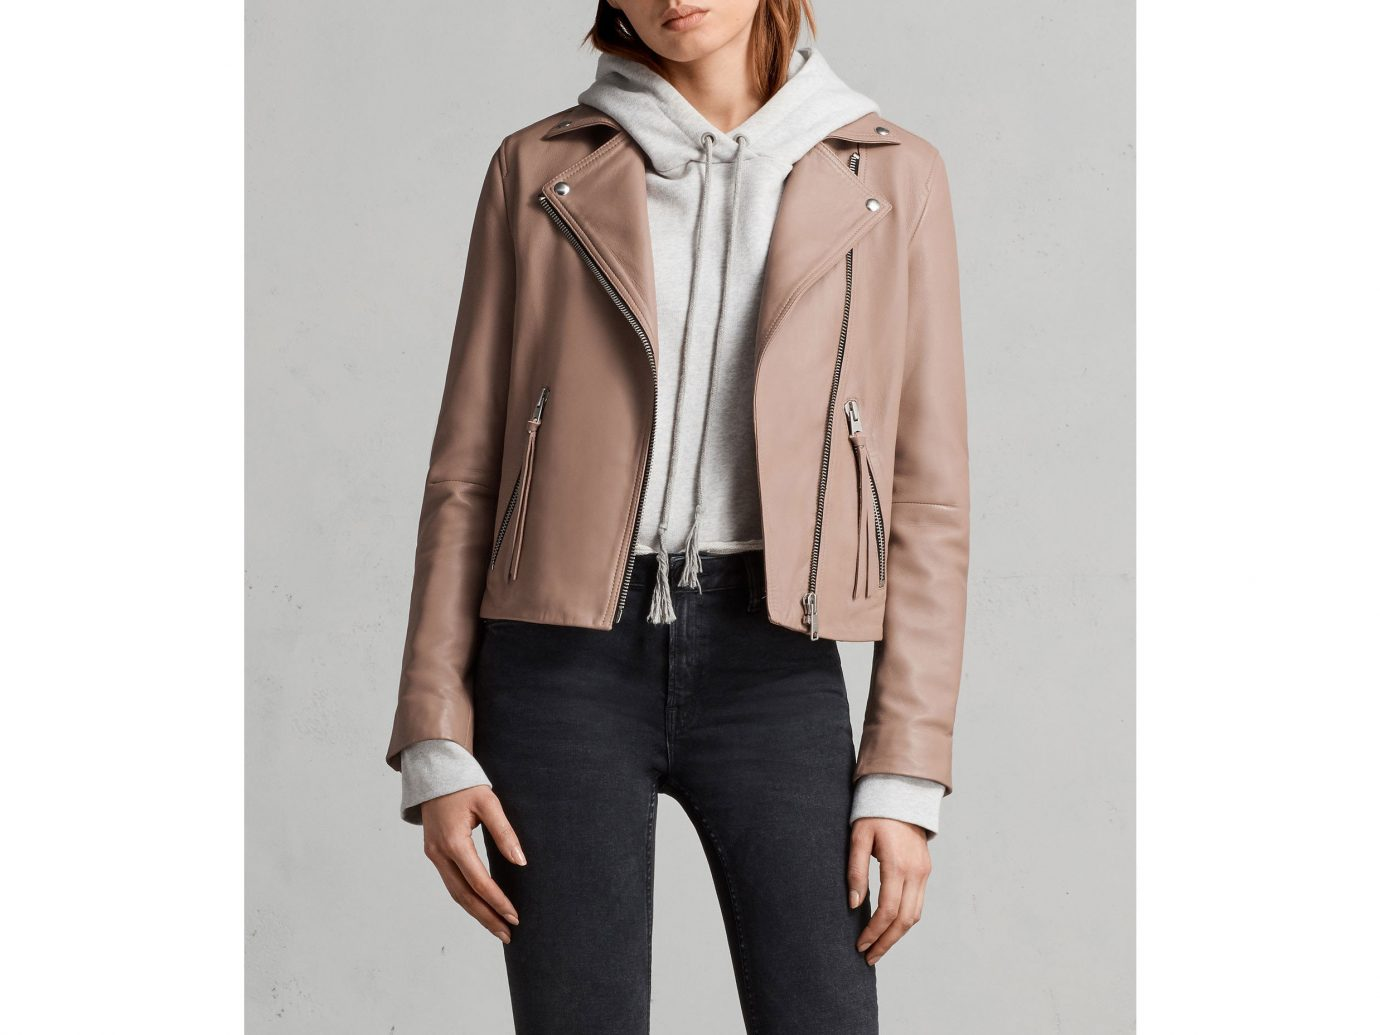 Packing Tips Style + Design Travel Shop person clothing suit wall posing wearing man standing jacket hood leather jacket leather dressed beige neck trouser coat hoodie